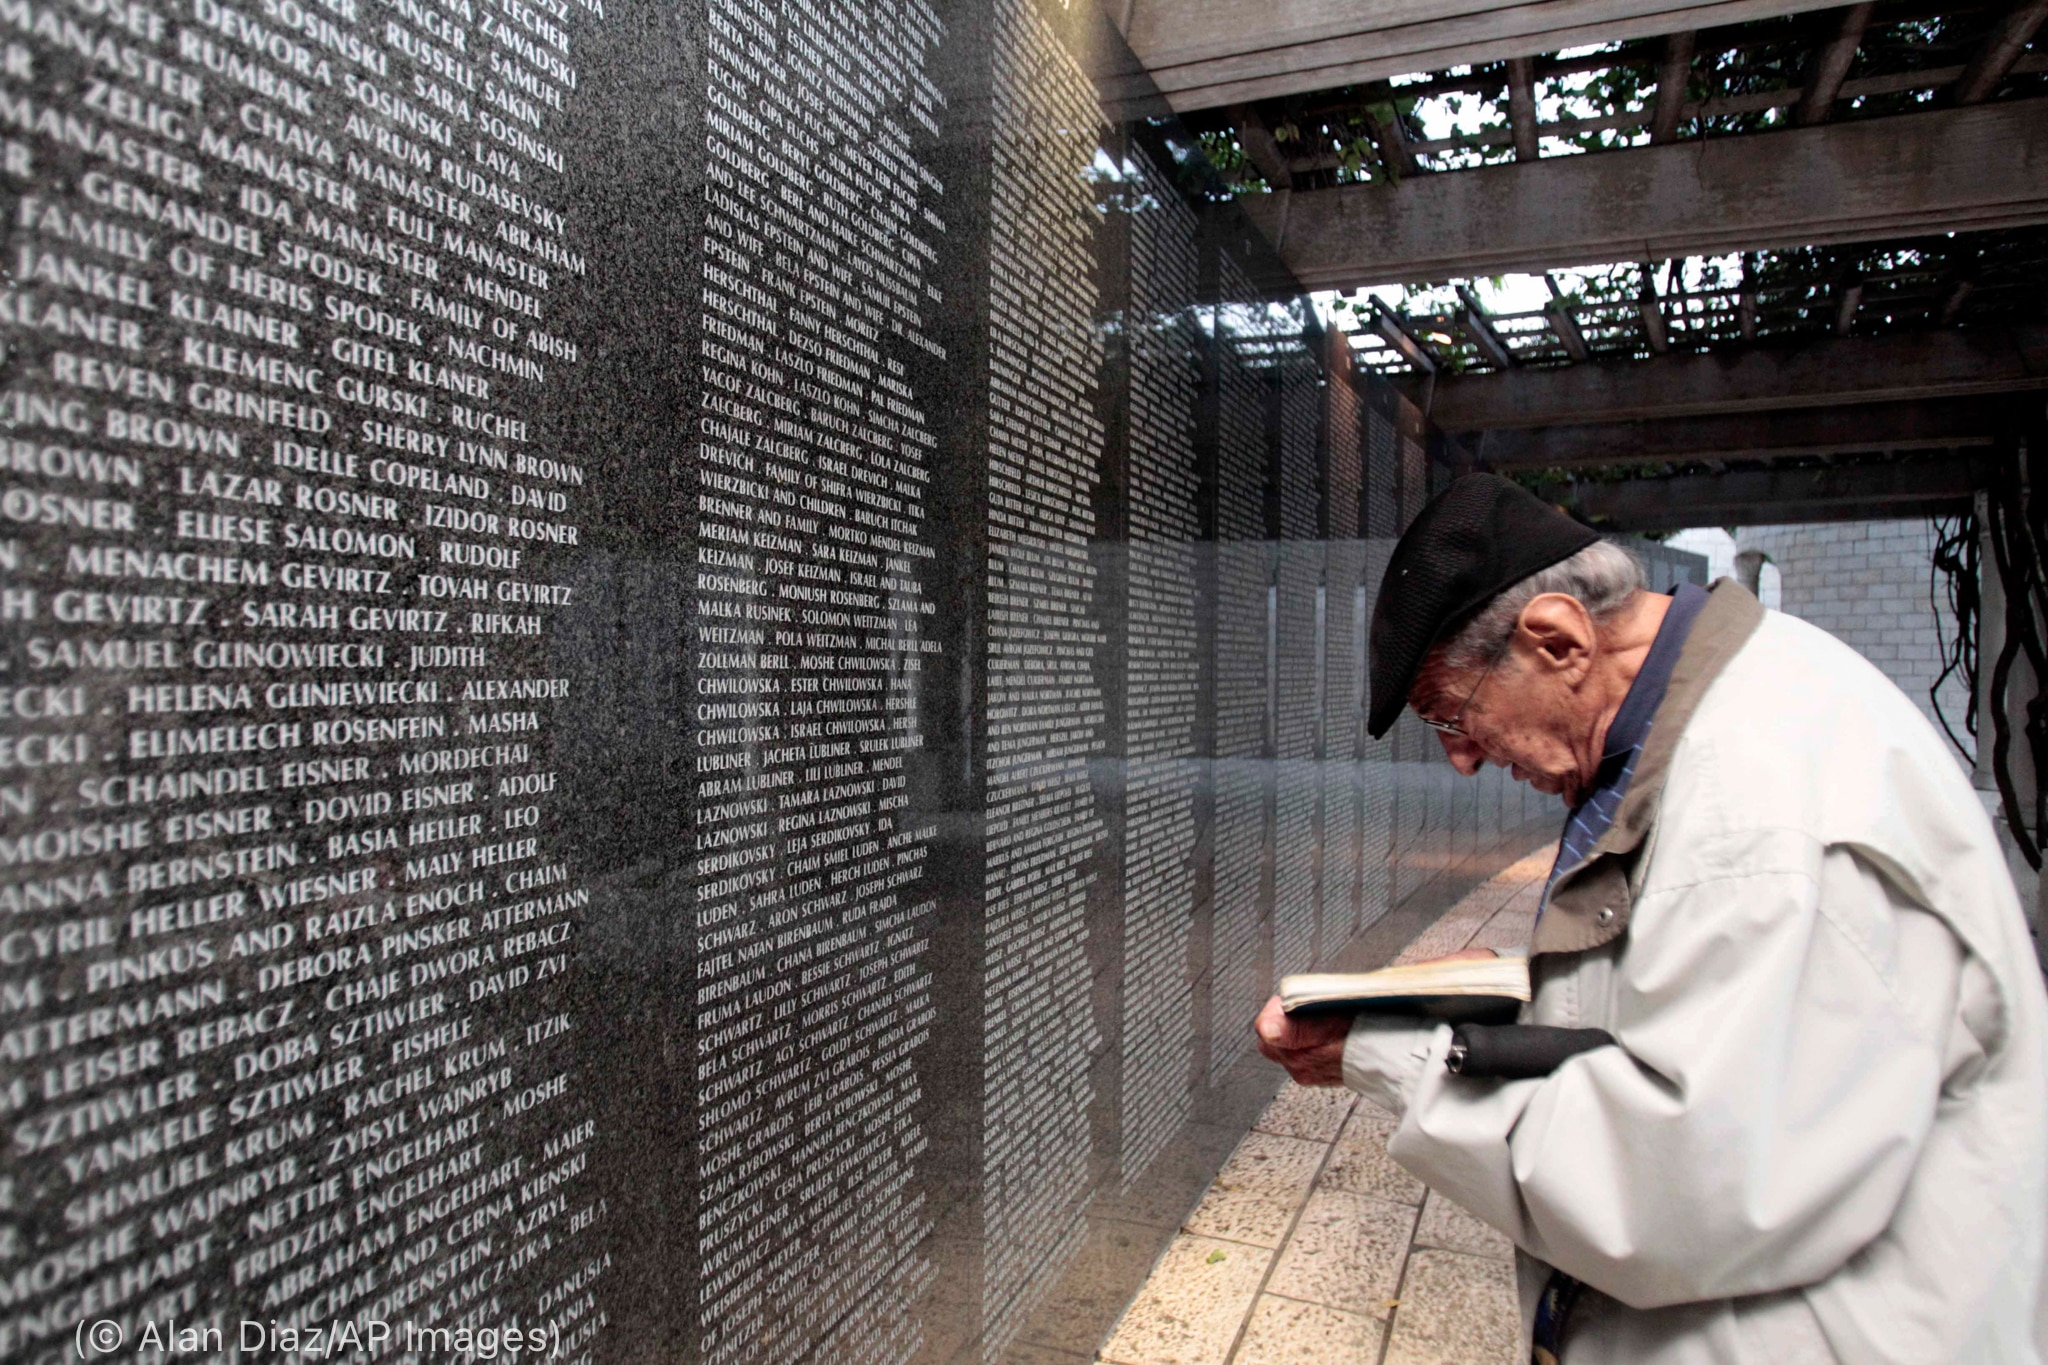 Man holding book and praying beside black granite wall containing many engraved names (© Alan Diaz/AP Images)